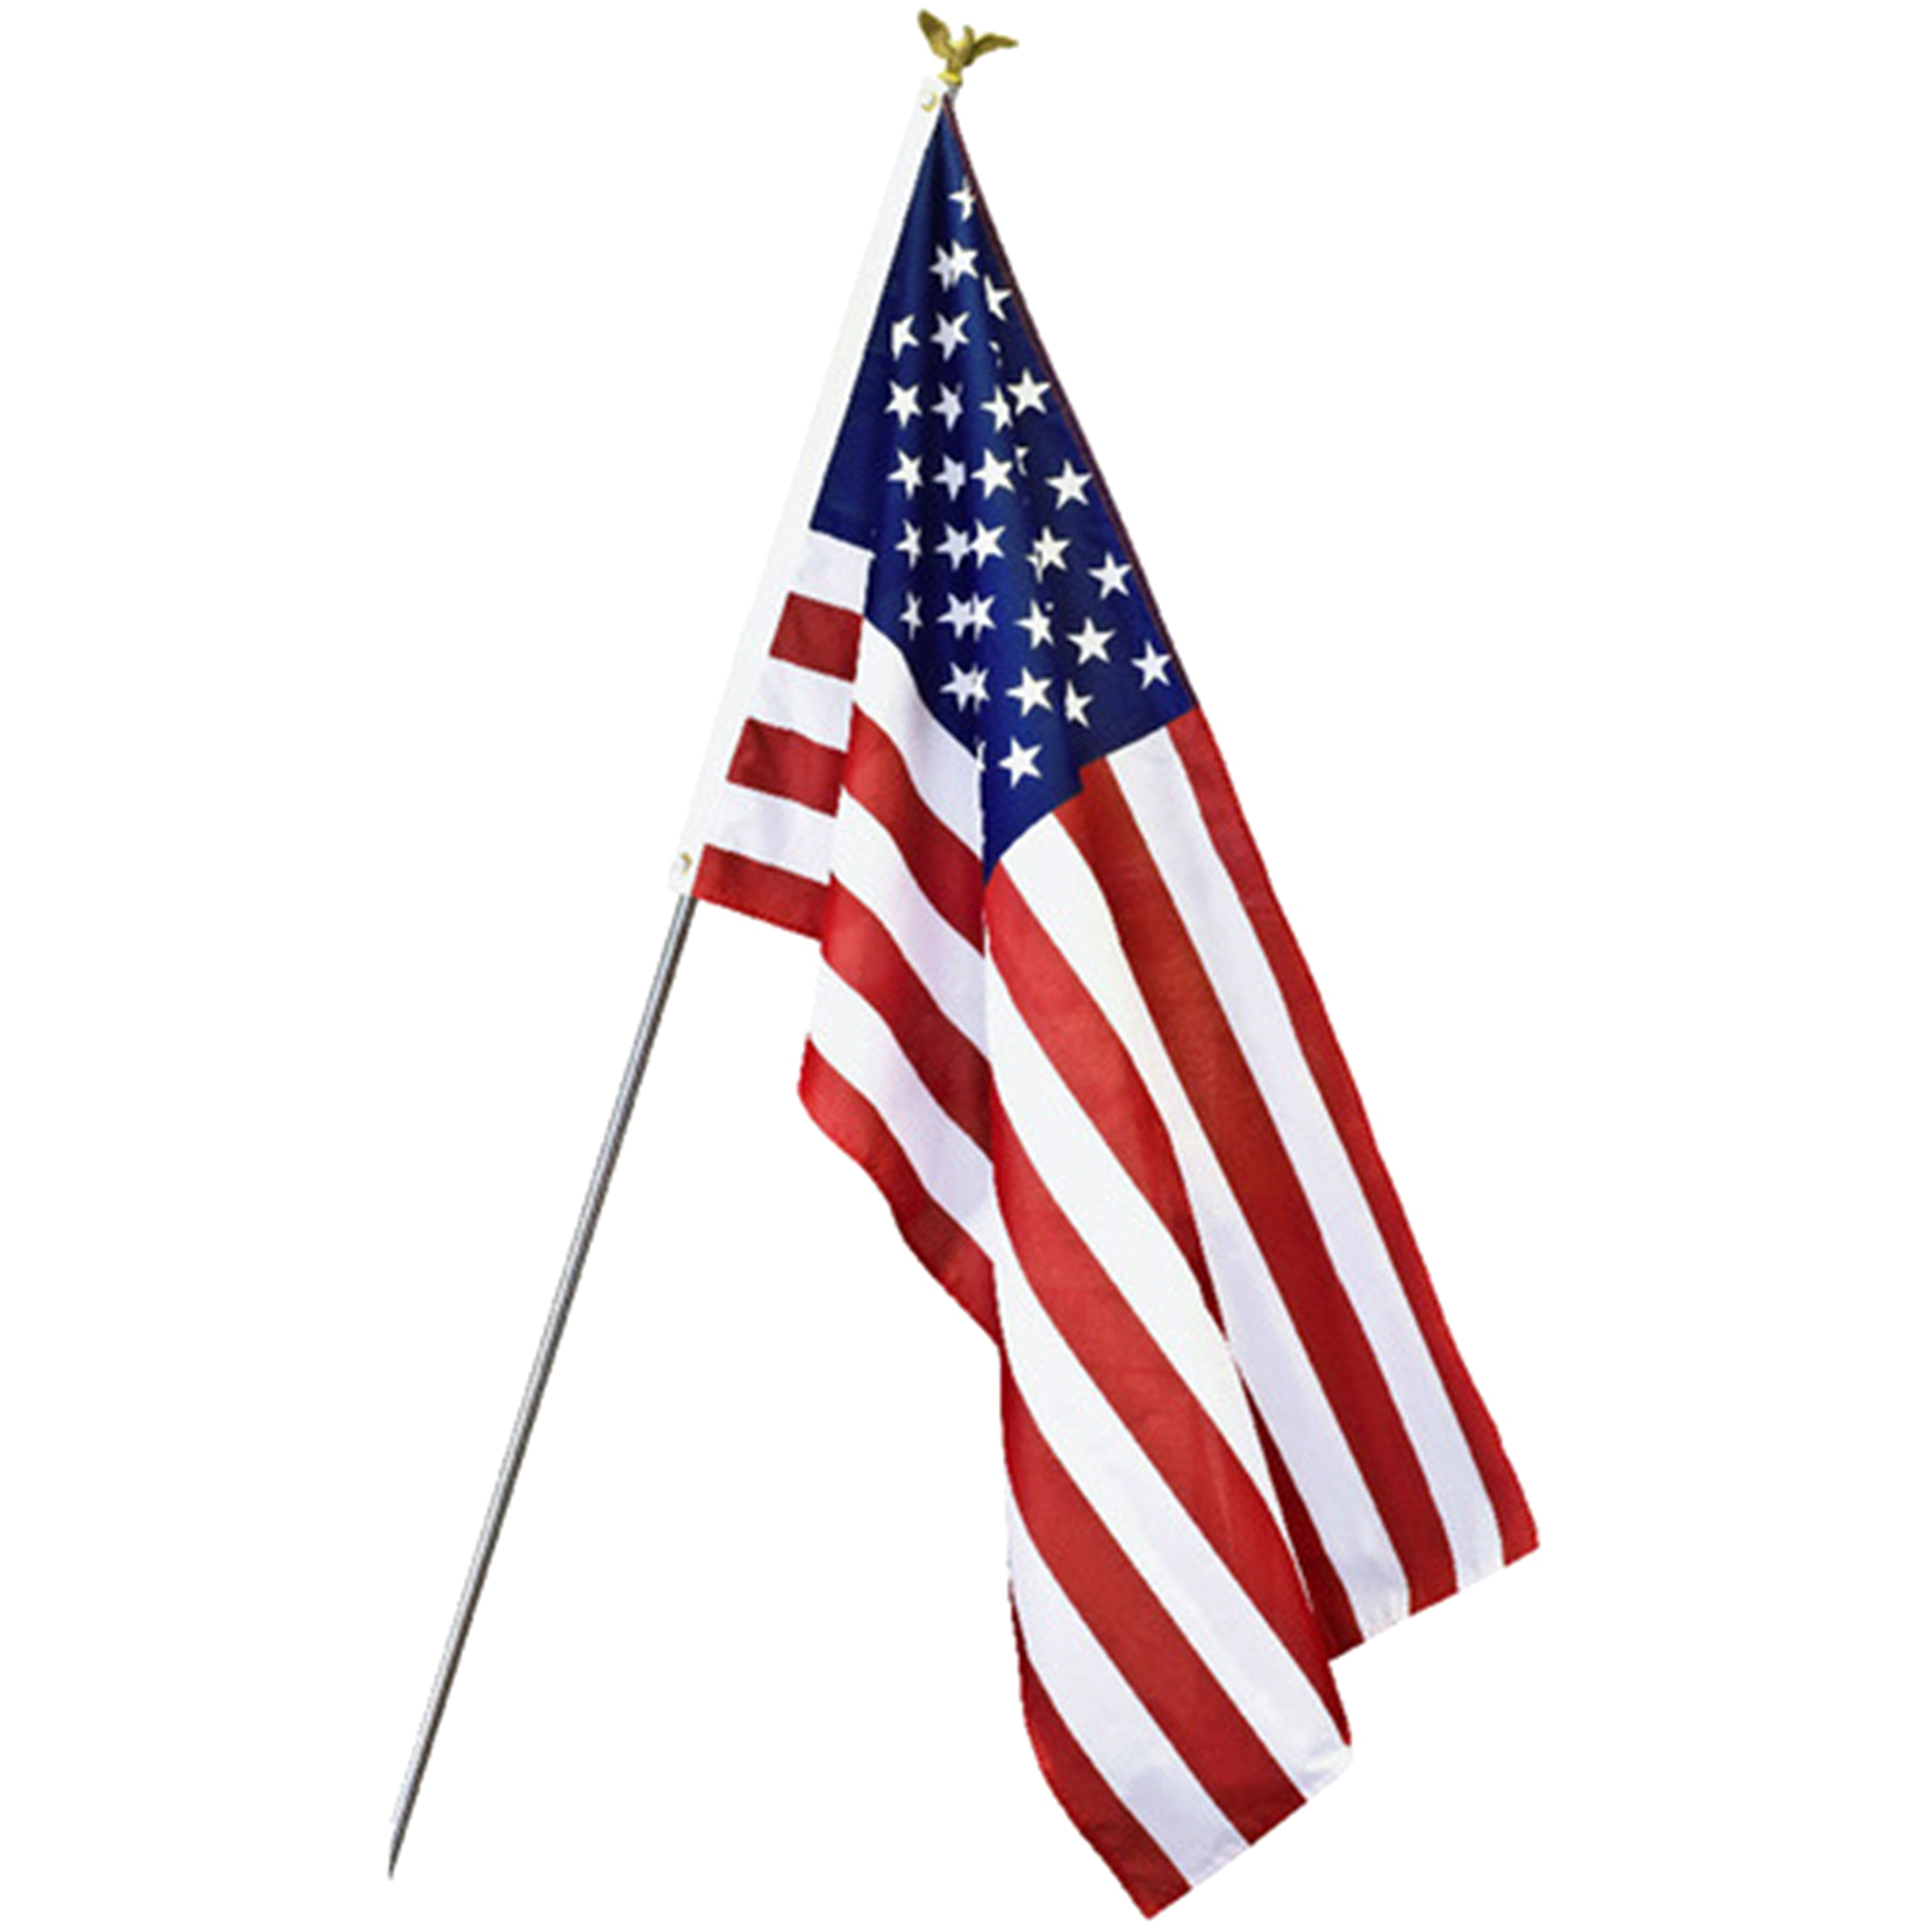 American Flag On Pole Png & Free American Flag On Pole.png.